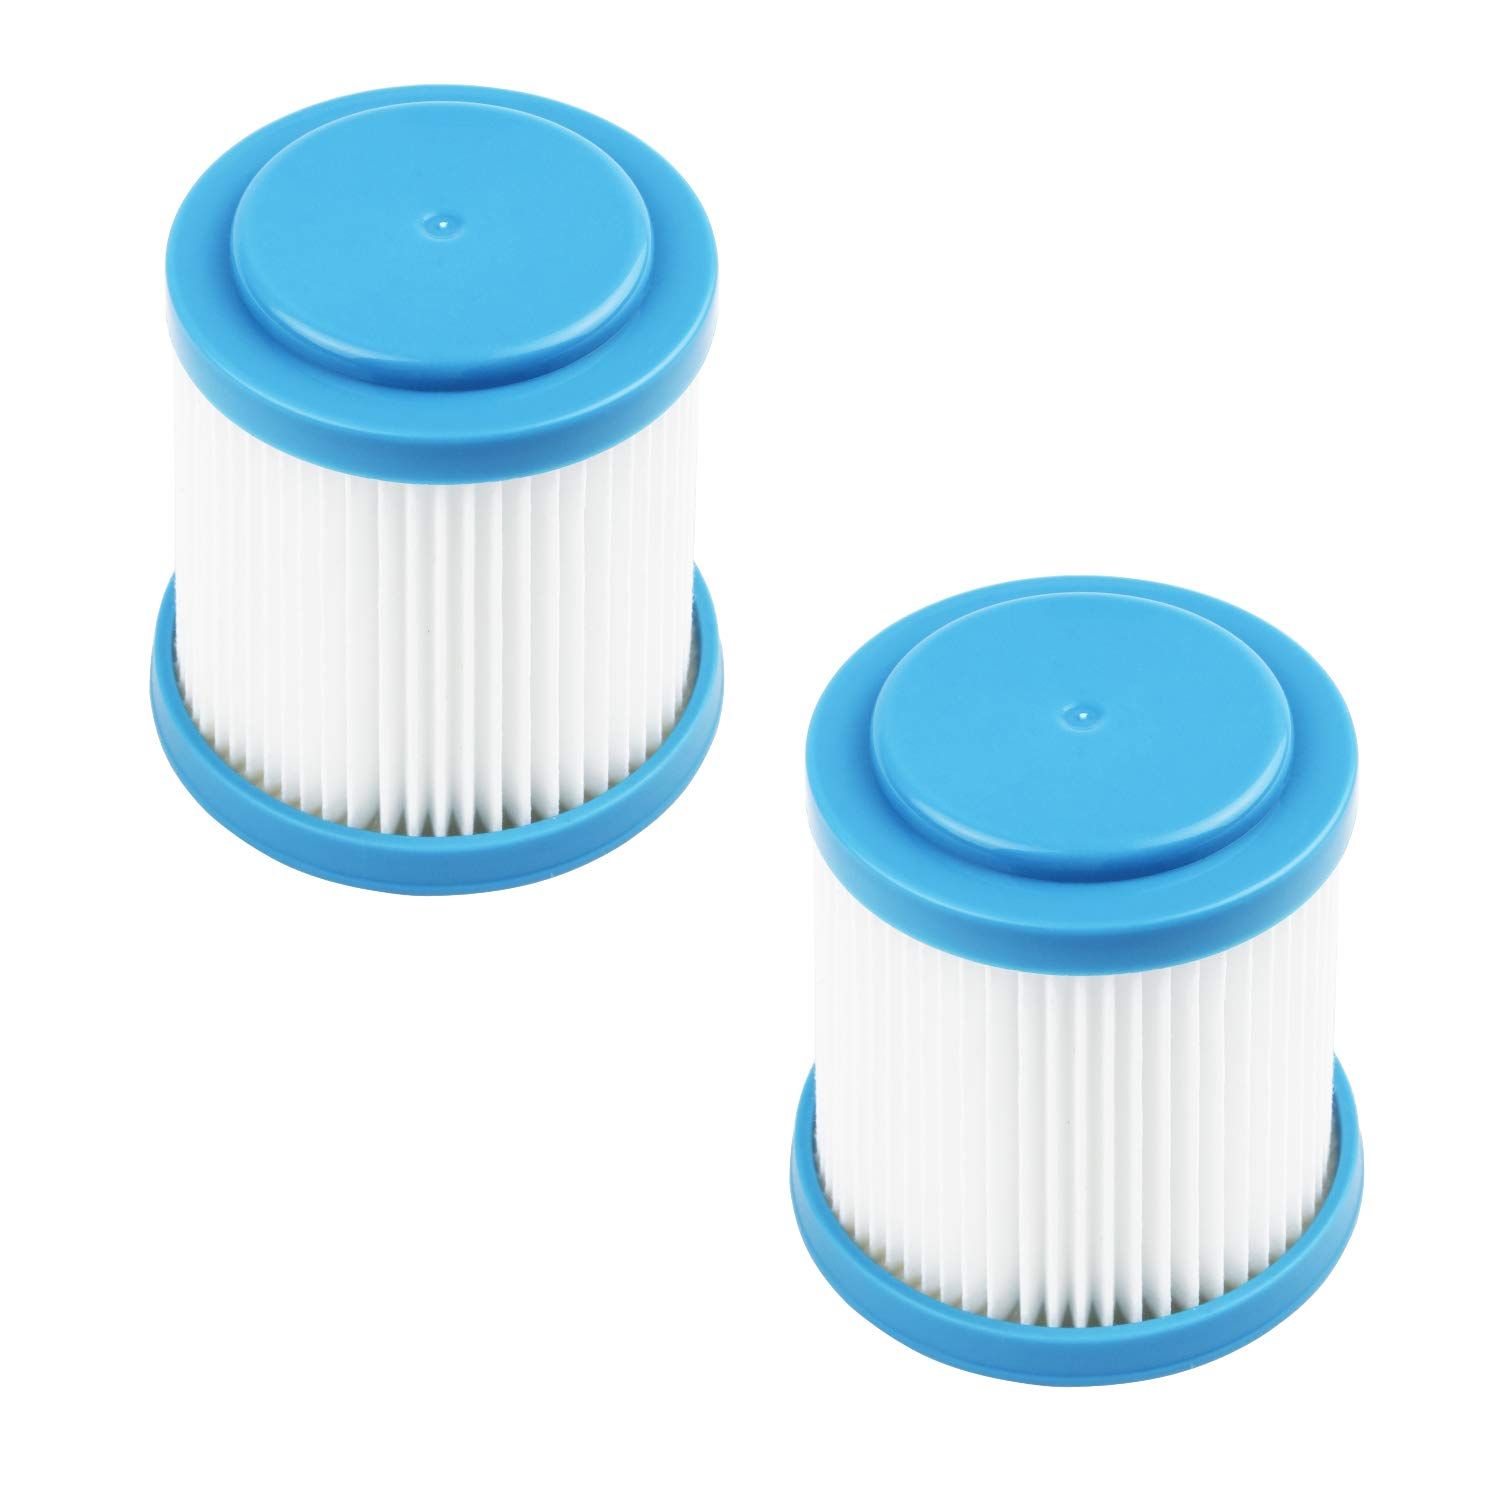 VPF20 Pleated Vacuum Filter Compatible with Black + Decker SMARTECH 2-in-1 Cordless Lithium Stick Vacuums (2-Pack)